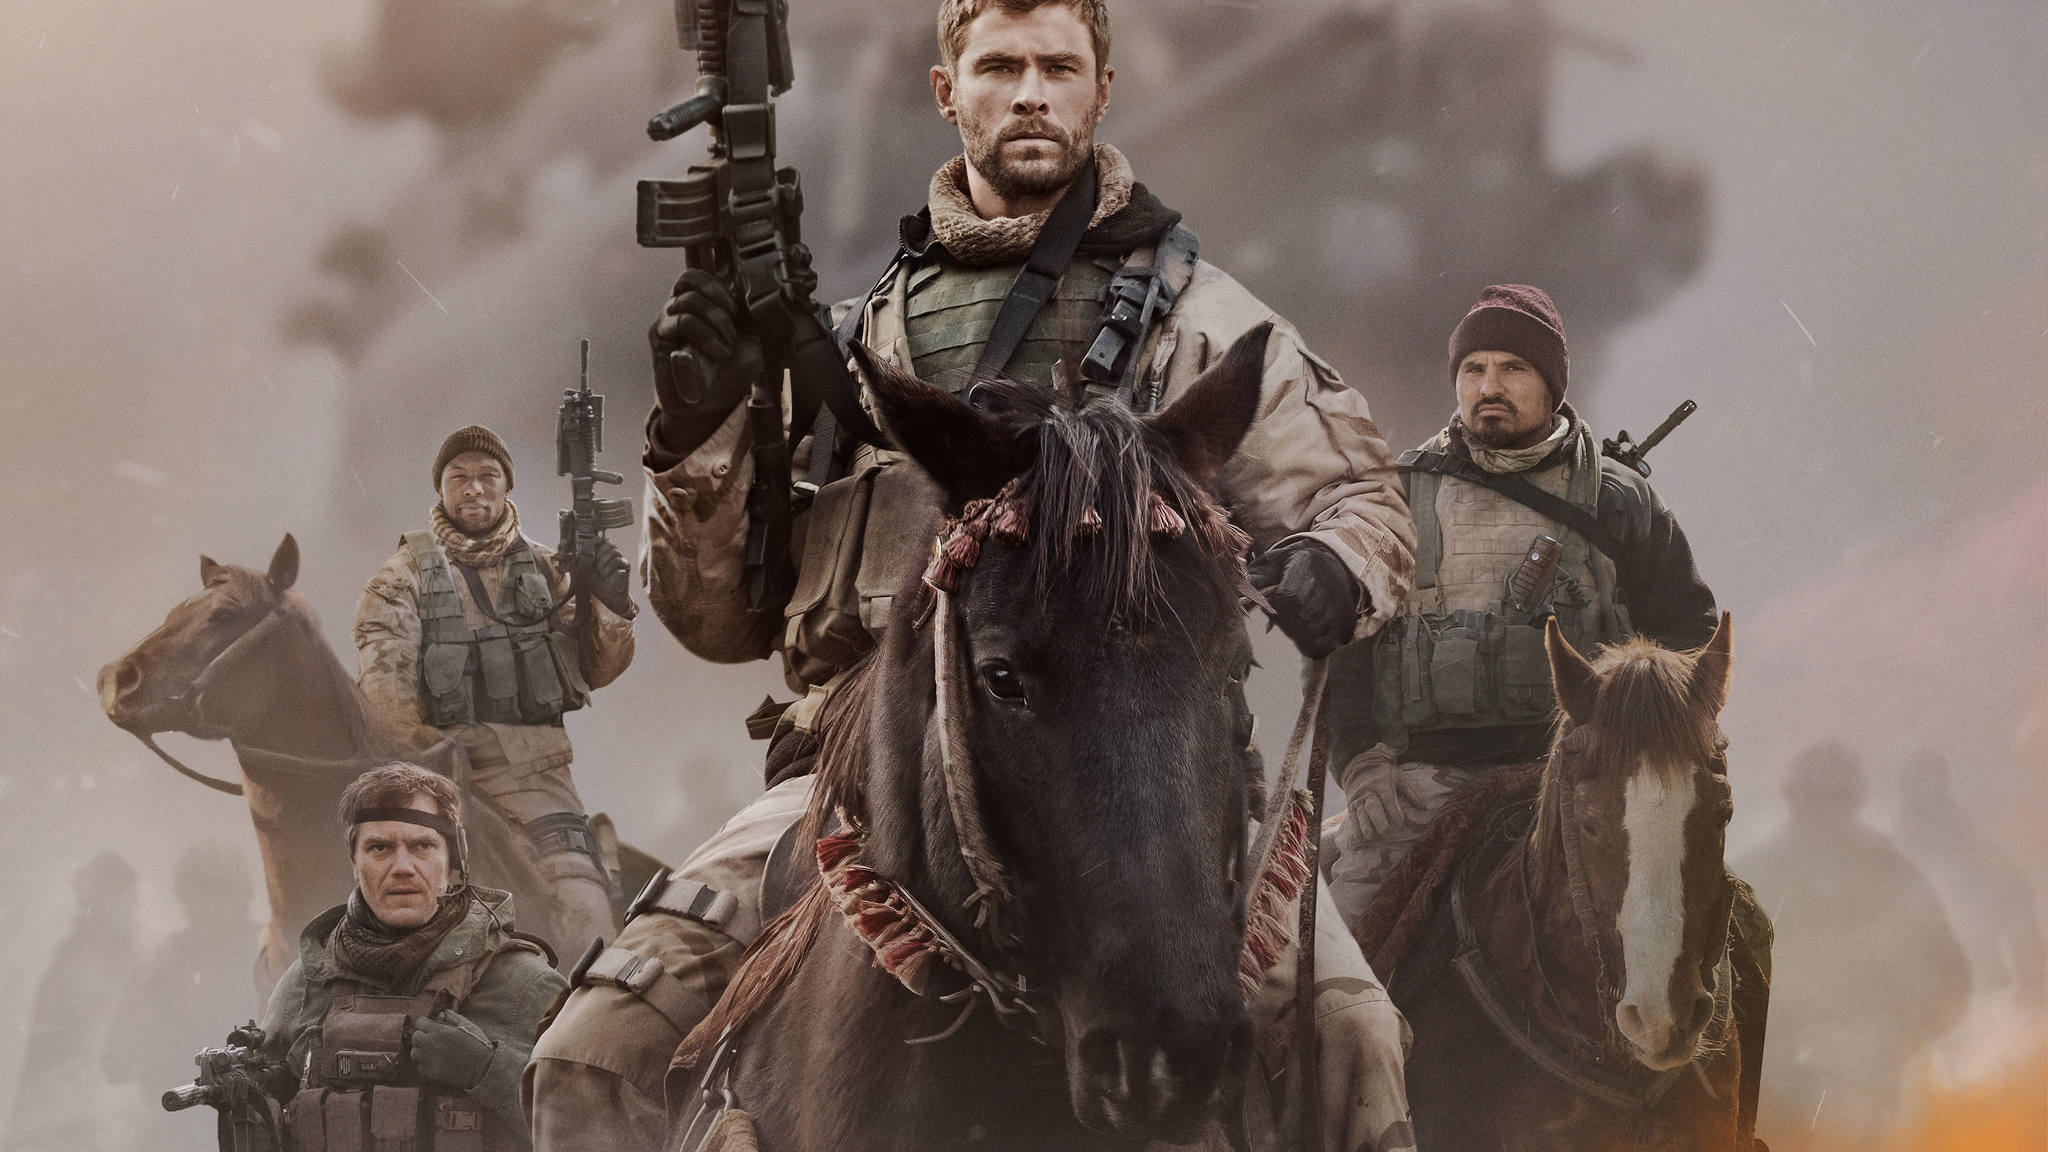 12 strong movie wallpaper 62503